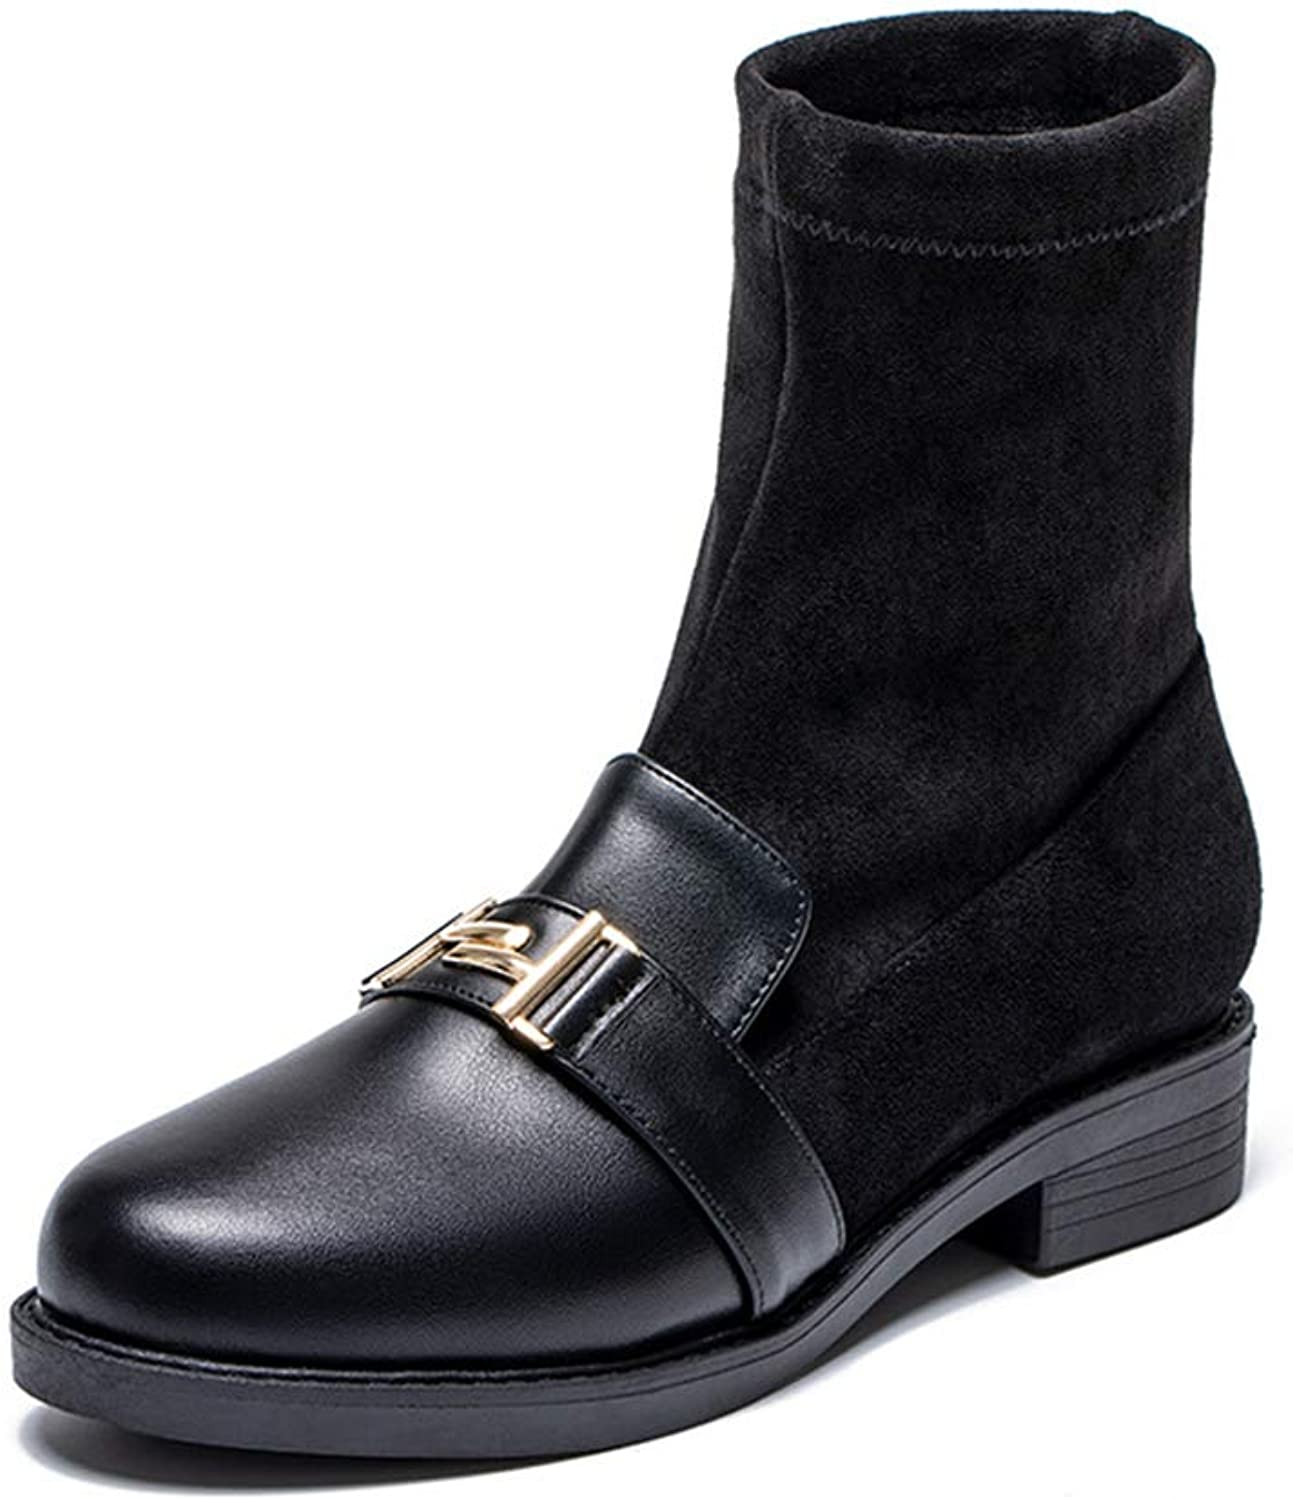 A-LING Women's Round Head Vintage Buckle shoes Slip On Martin Boots